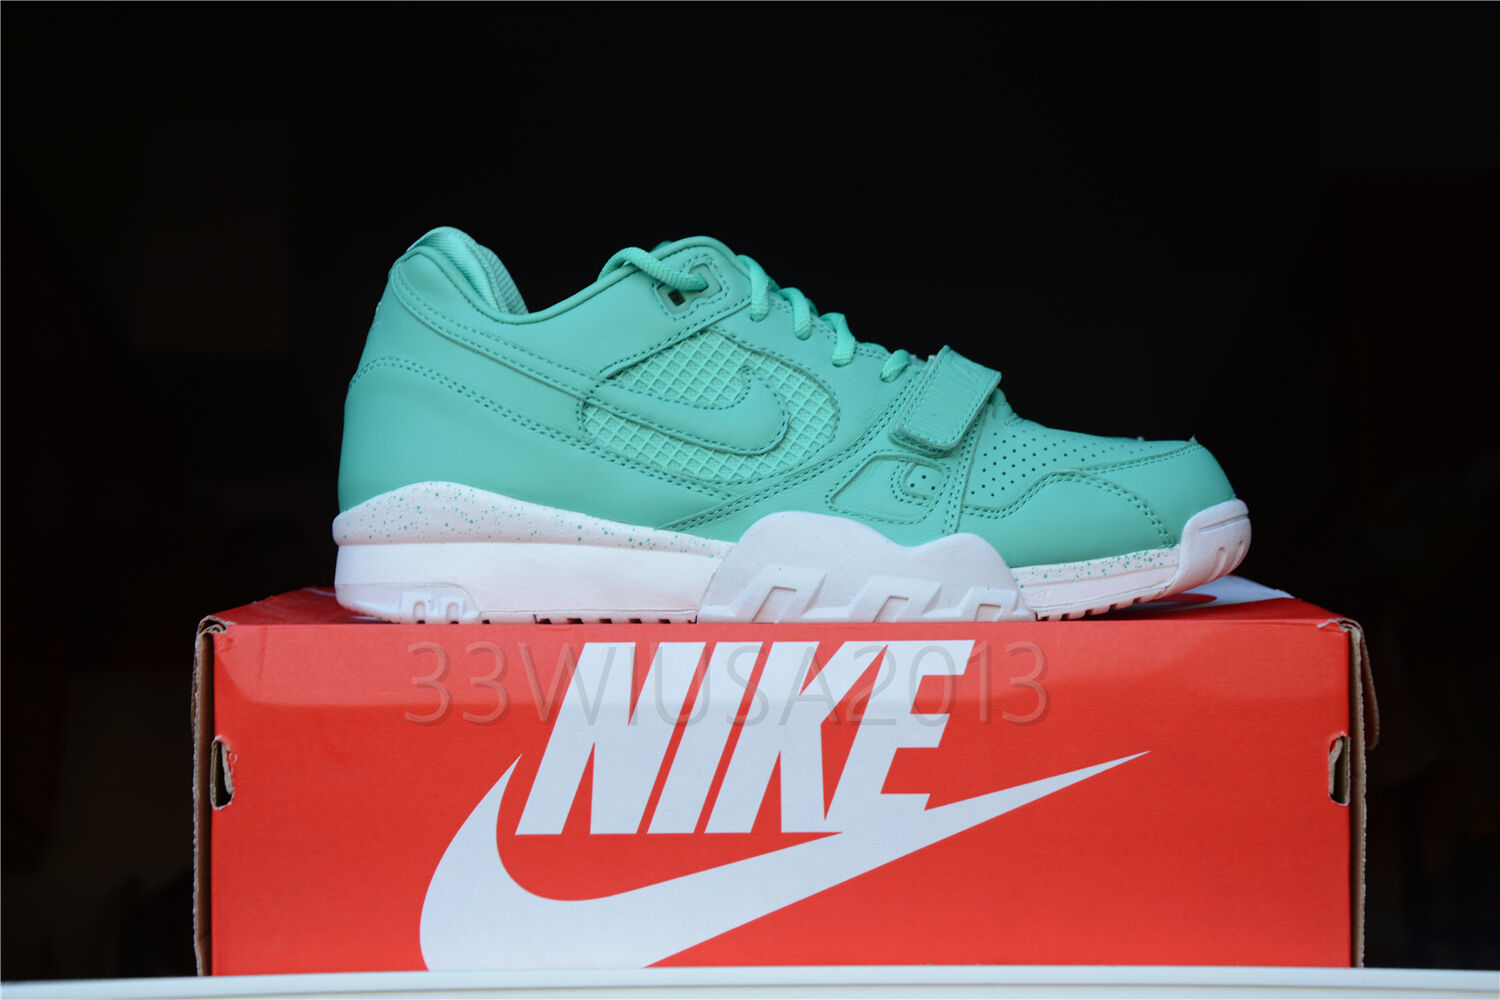 Men's NIKE AIR TRAINER 2 PREMIUM Crystal Mint/blanc 708459-300 DS Yeezy Roshe